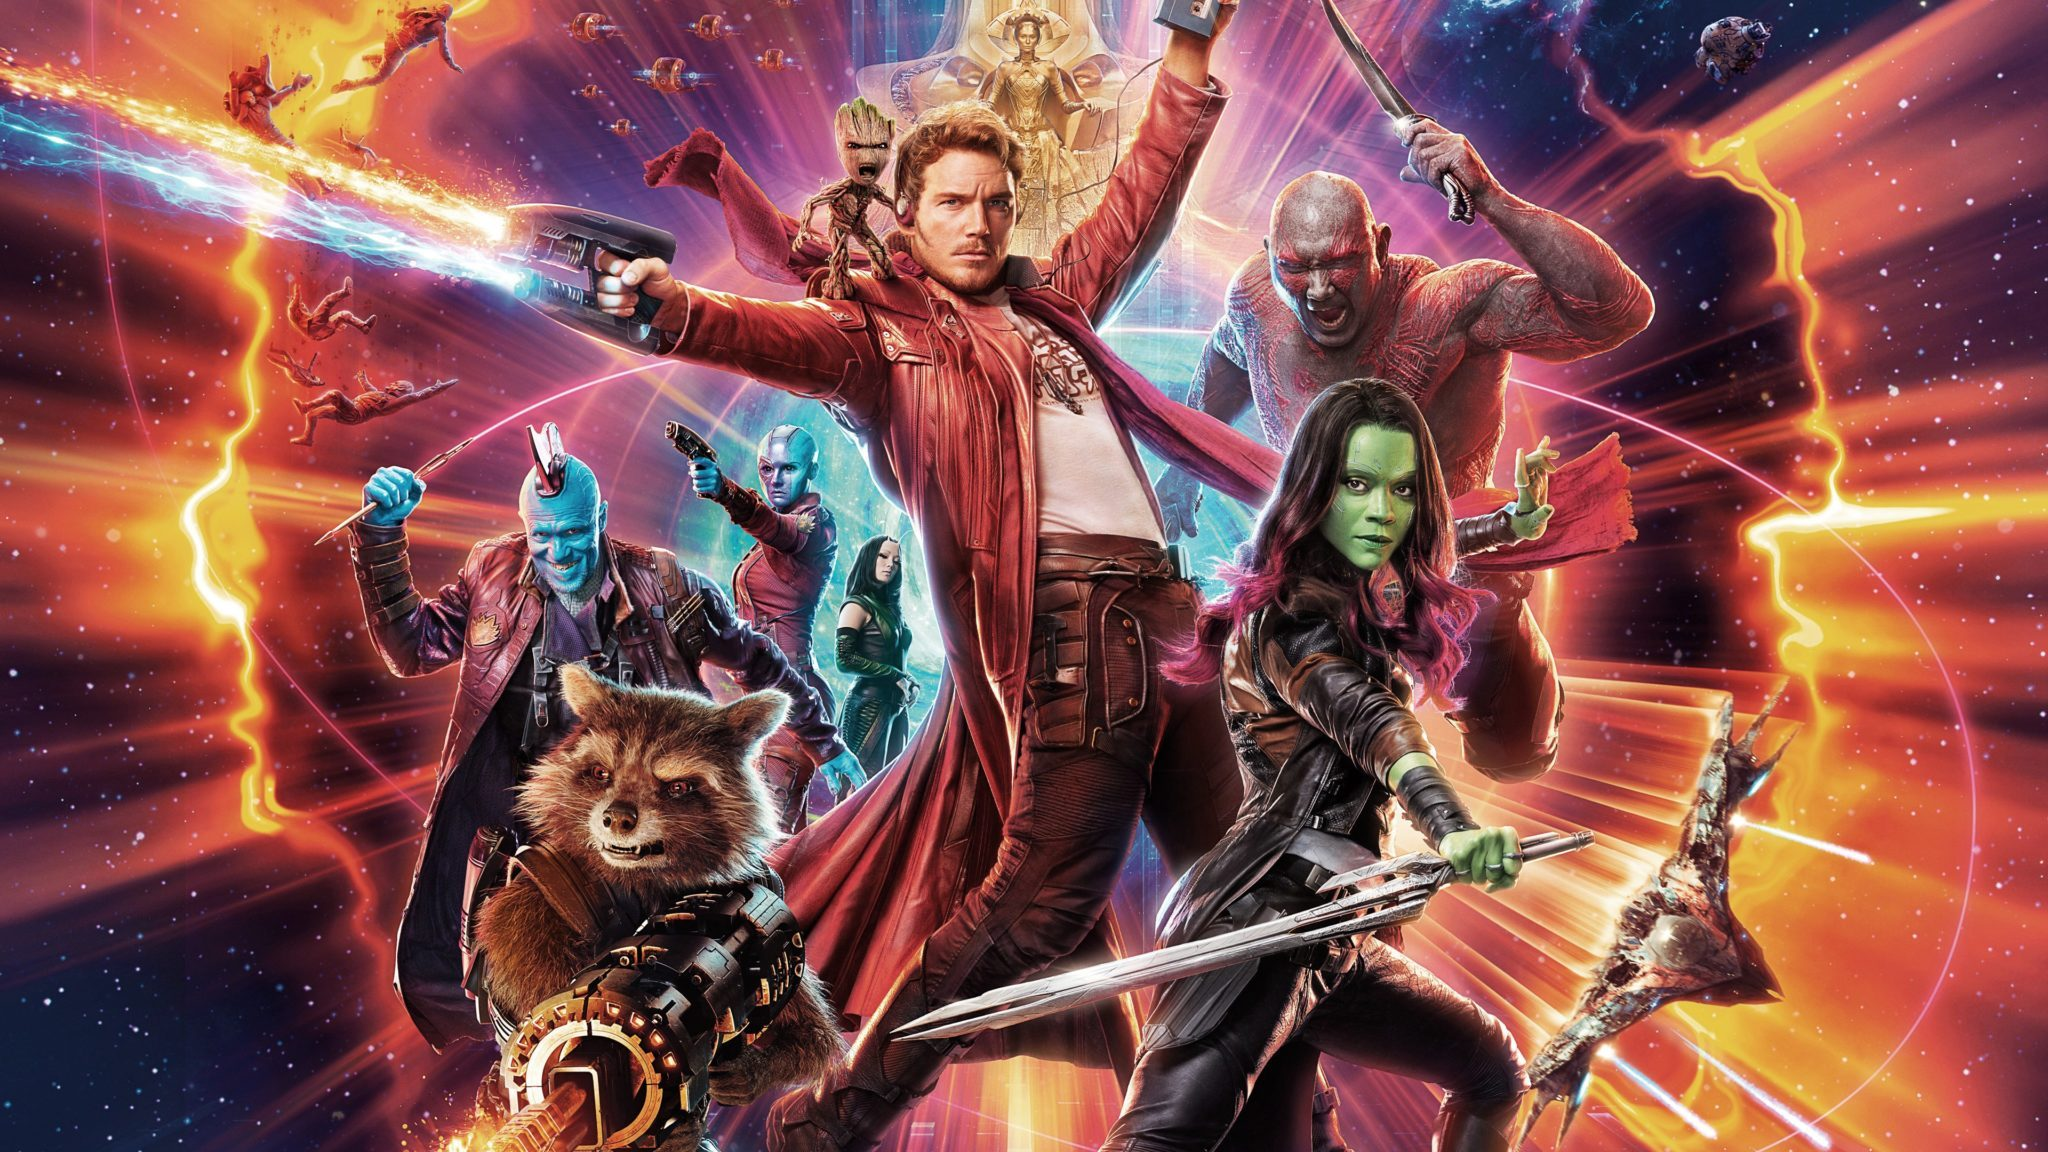 Free Download Guardians Of The Galaxy 2 4k 2017 Hd Wallpapers